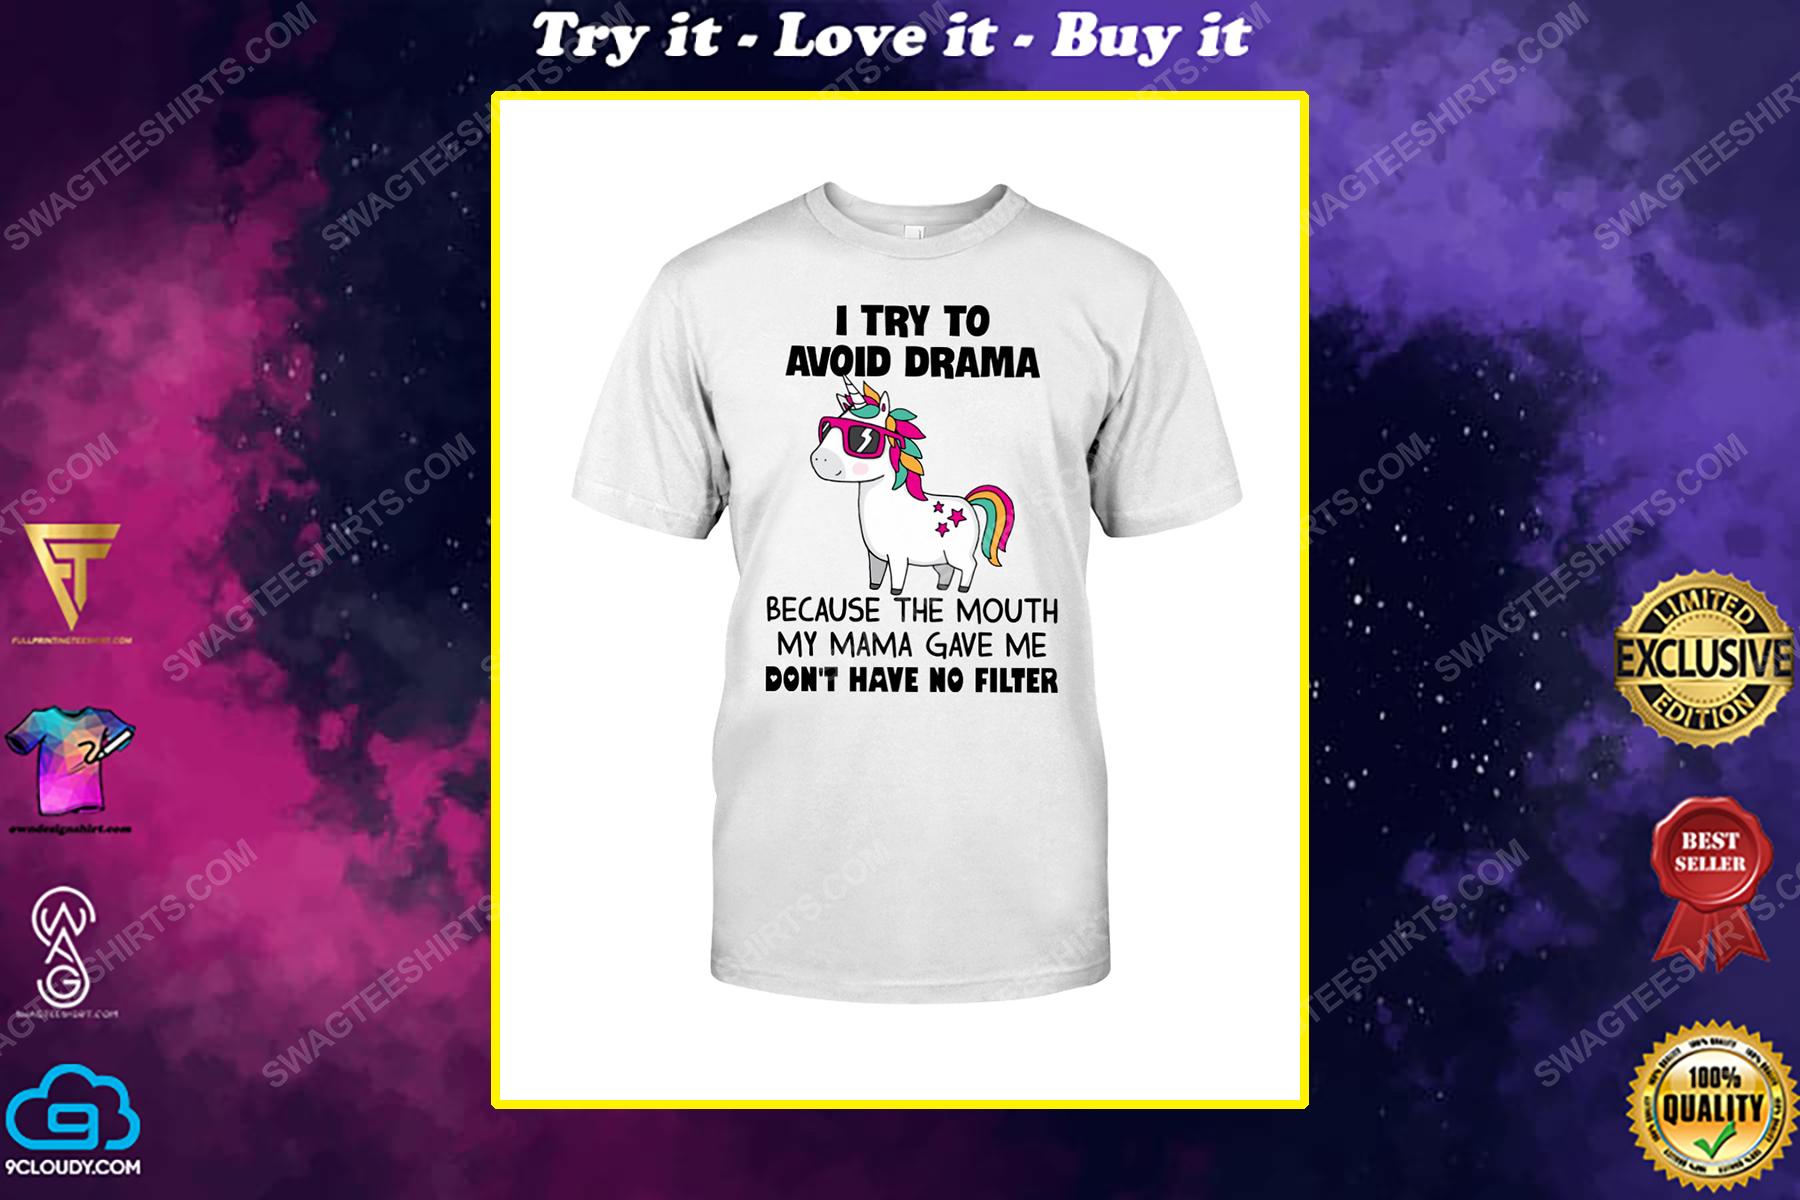 Unicorn i try to avoid drama because the mouth my mama gave me don't have no filter shirt